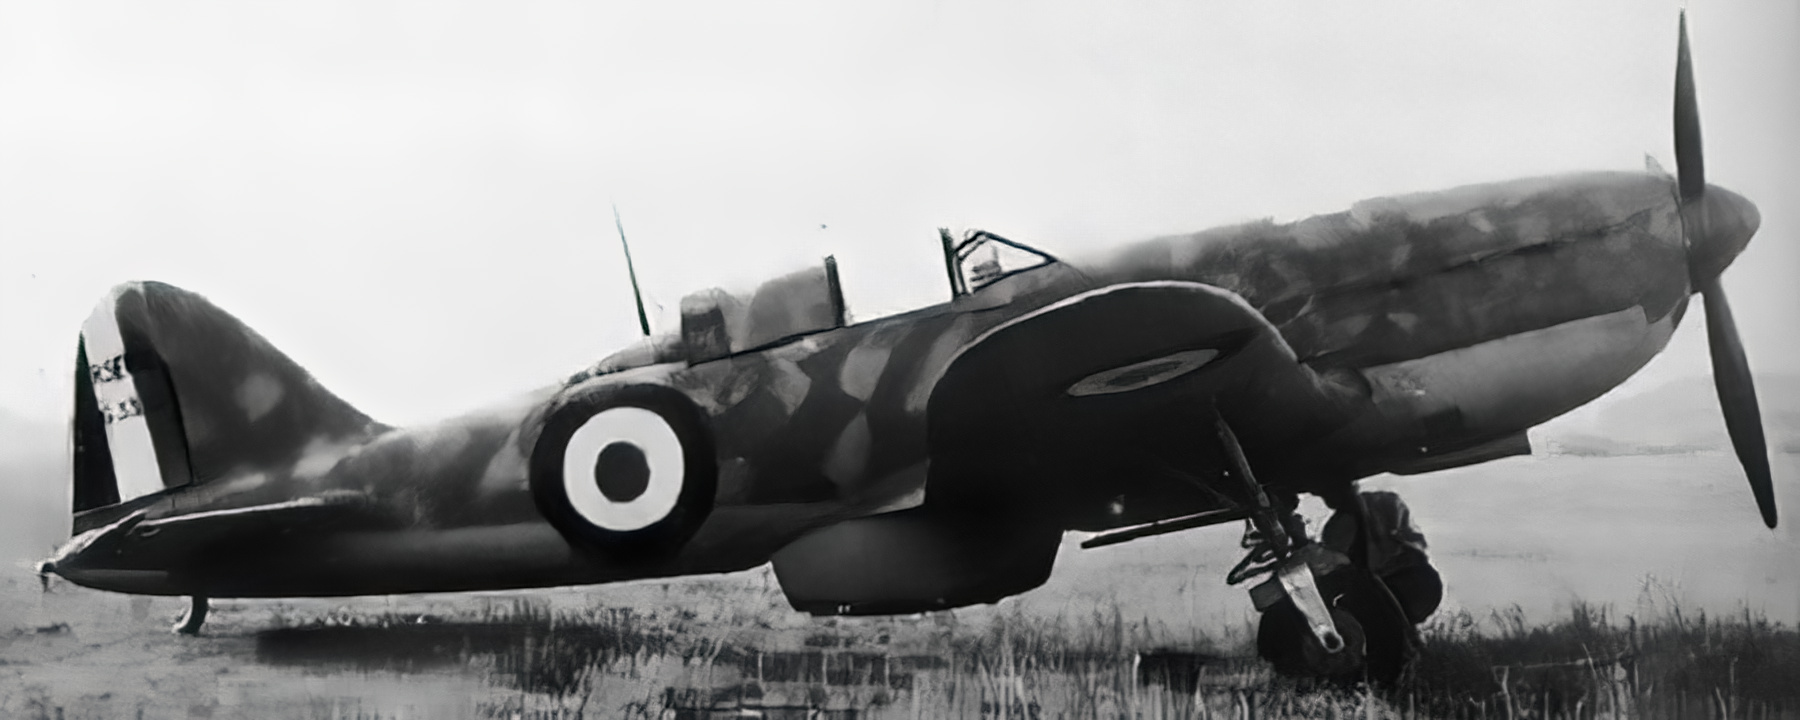 French Airforce Arsenal VG 33 sits abandoned after the fall of France June 1940 ebay 04